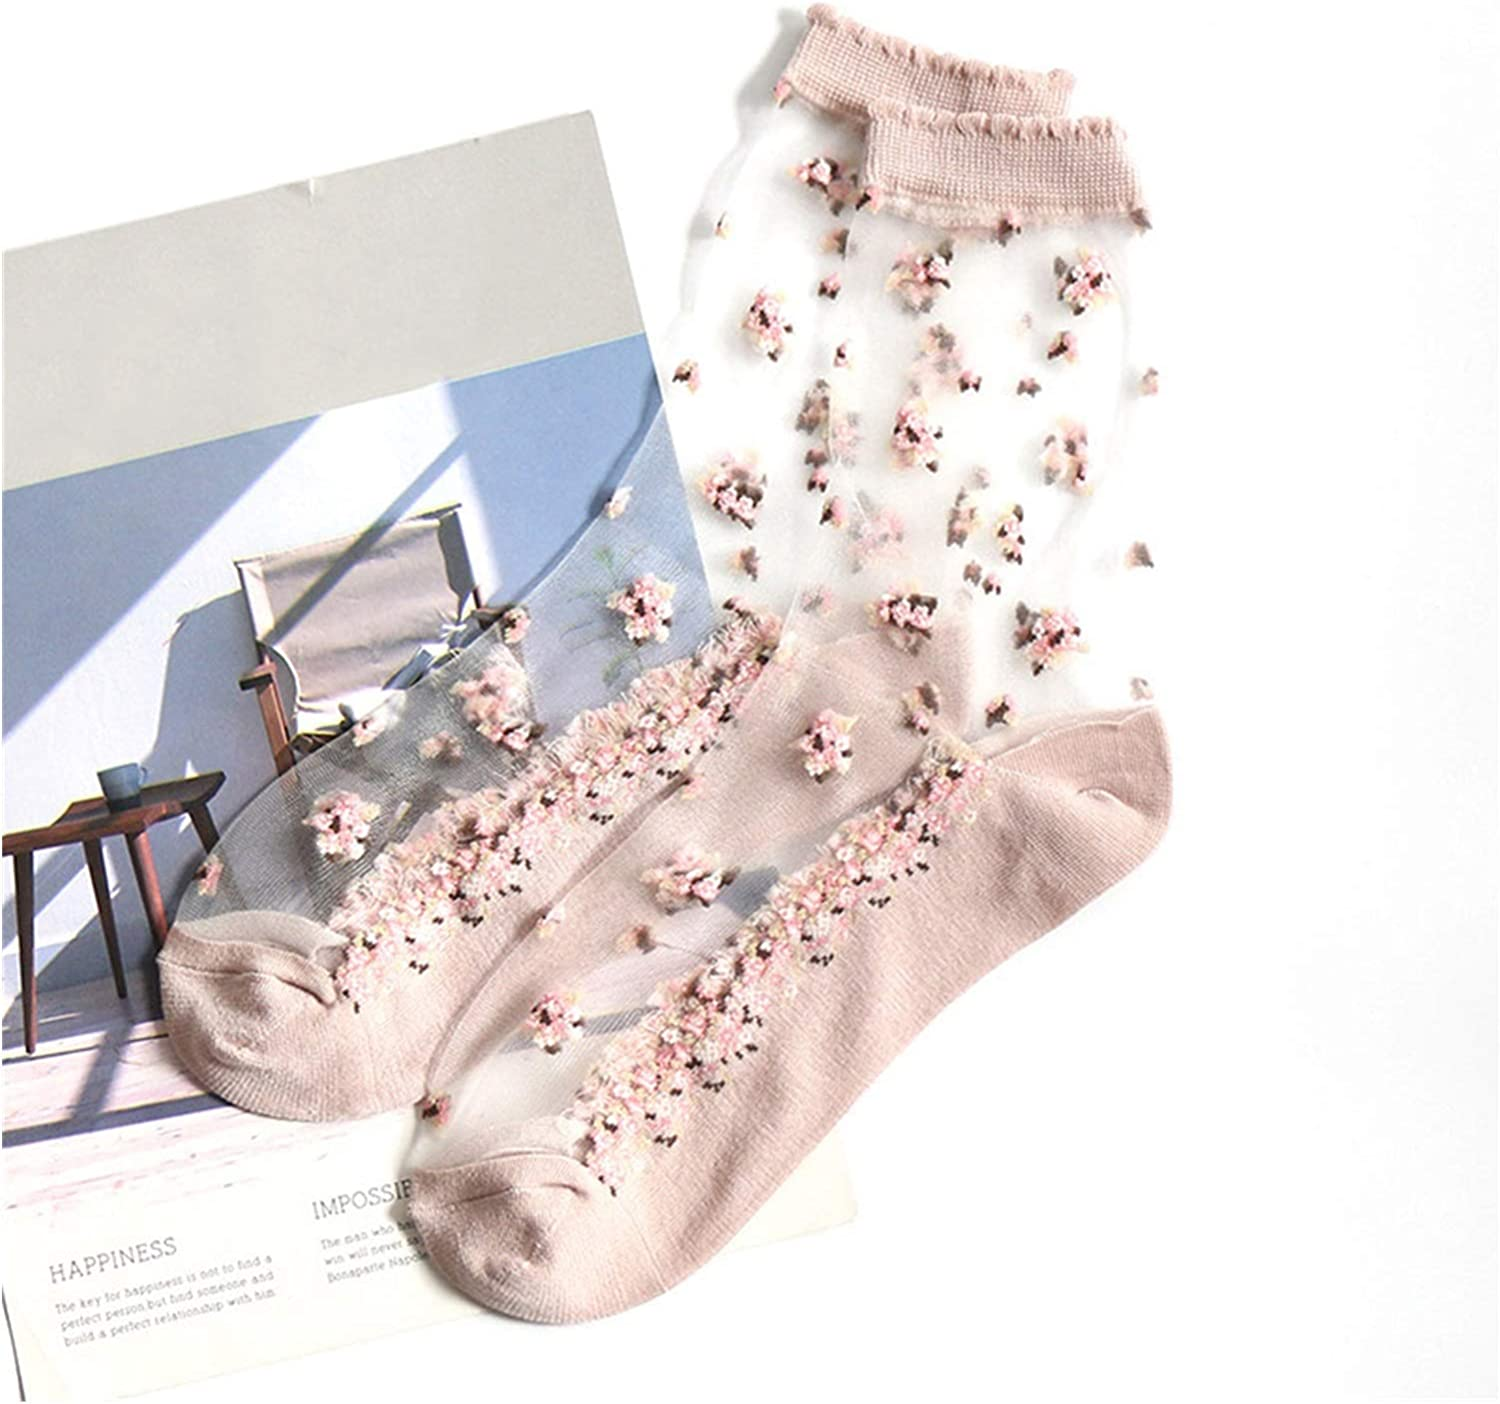 CHENGCHAO Sock 1 Pair Womens Summer Elastic Crystal Ice Silk Short Socks Jacquard Roses Floral Embroidered Ultrathin Transparent Thin Socks Movement (Color : Pink)